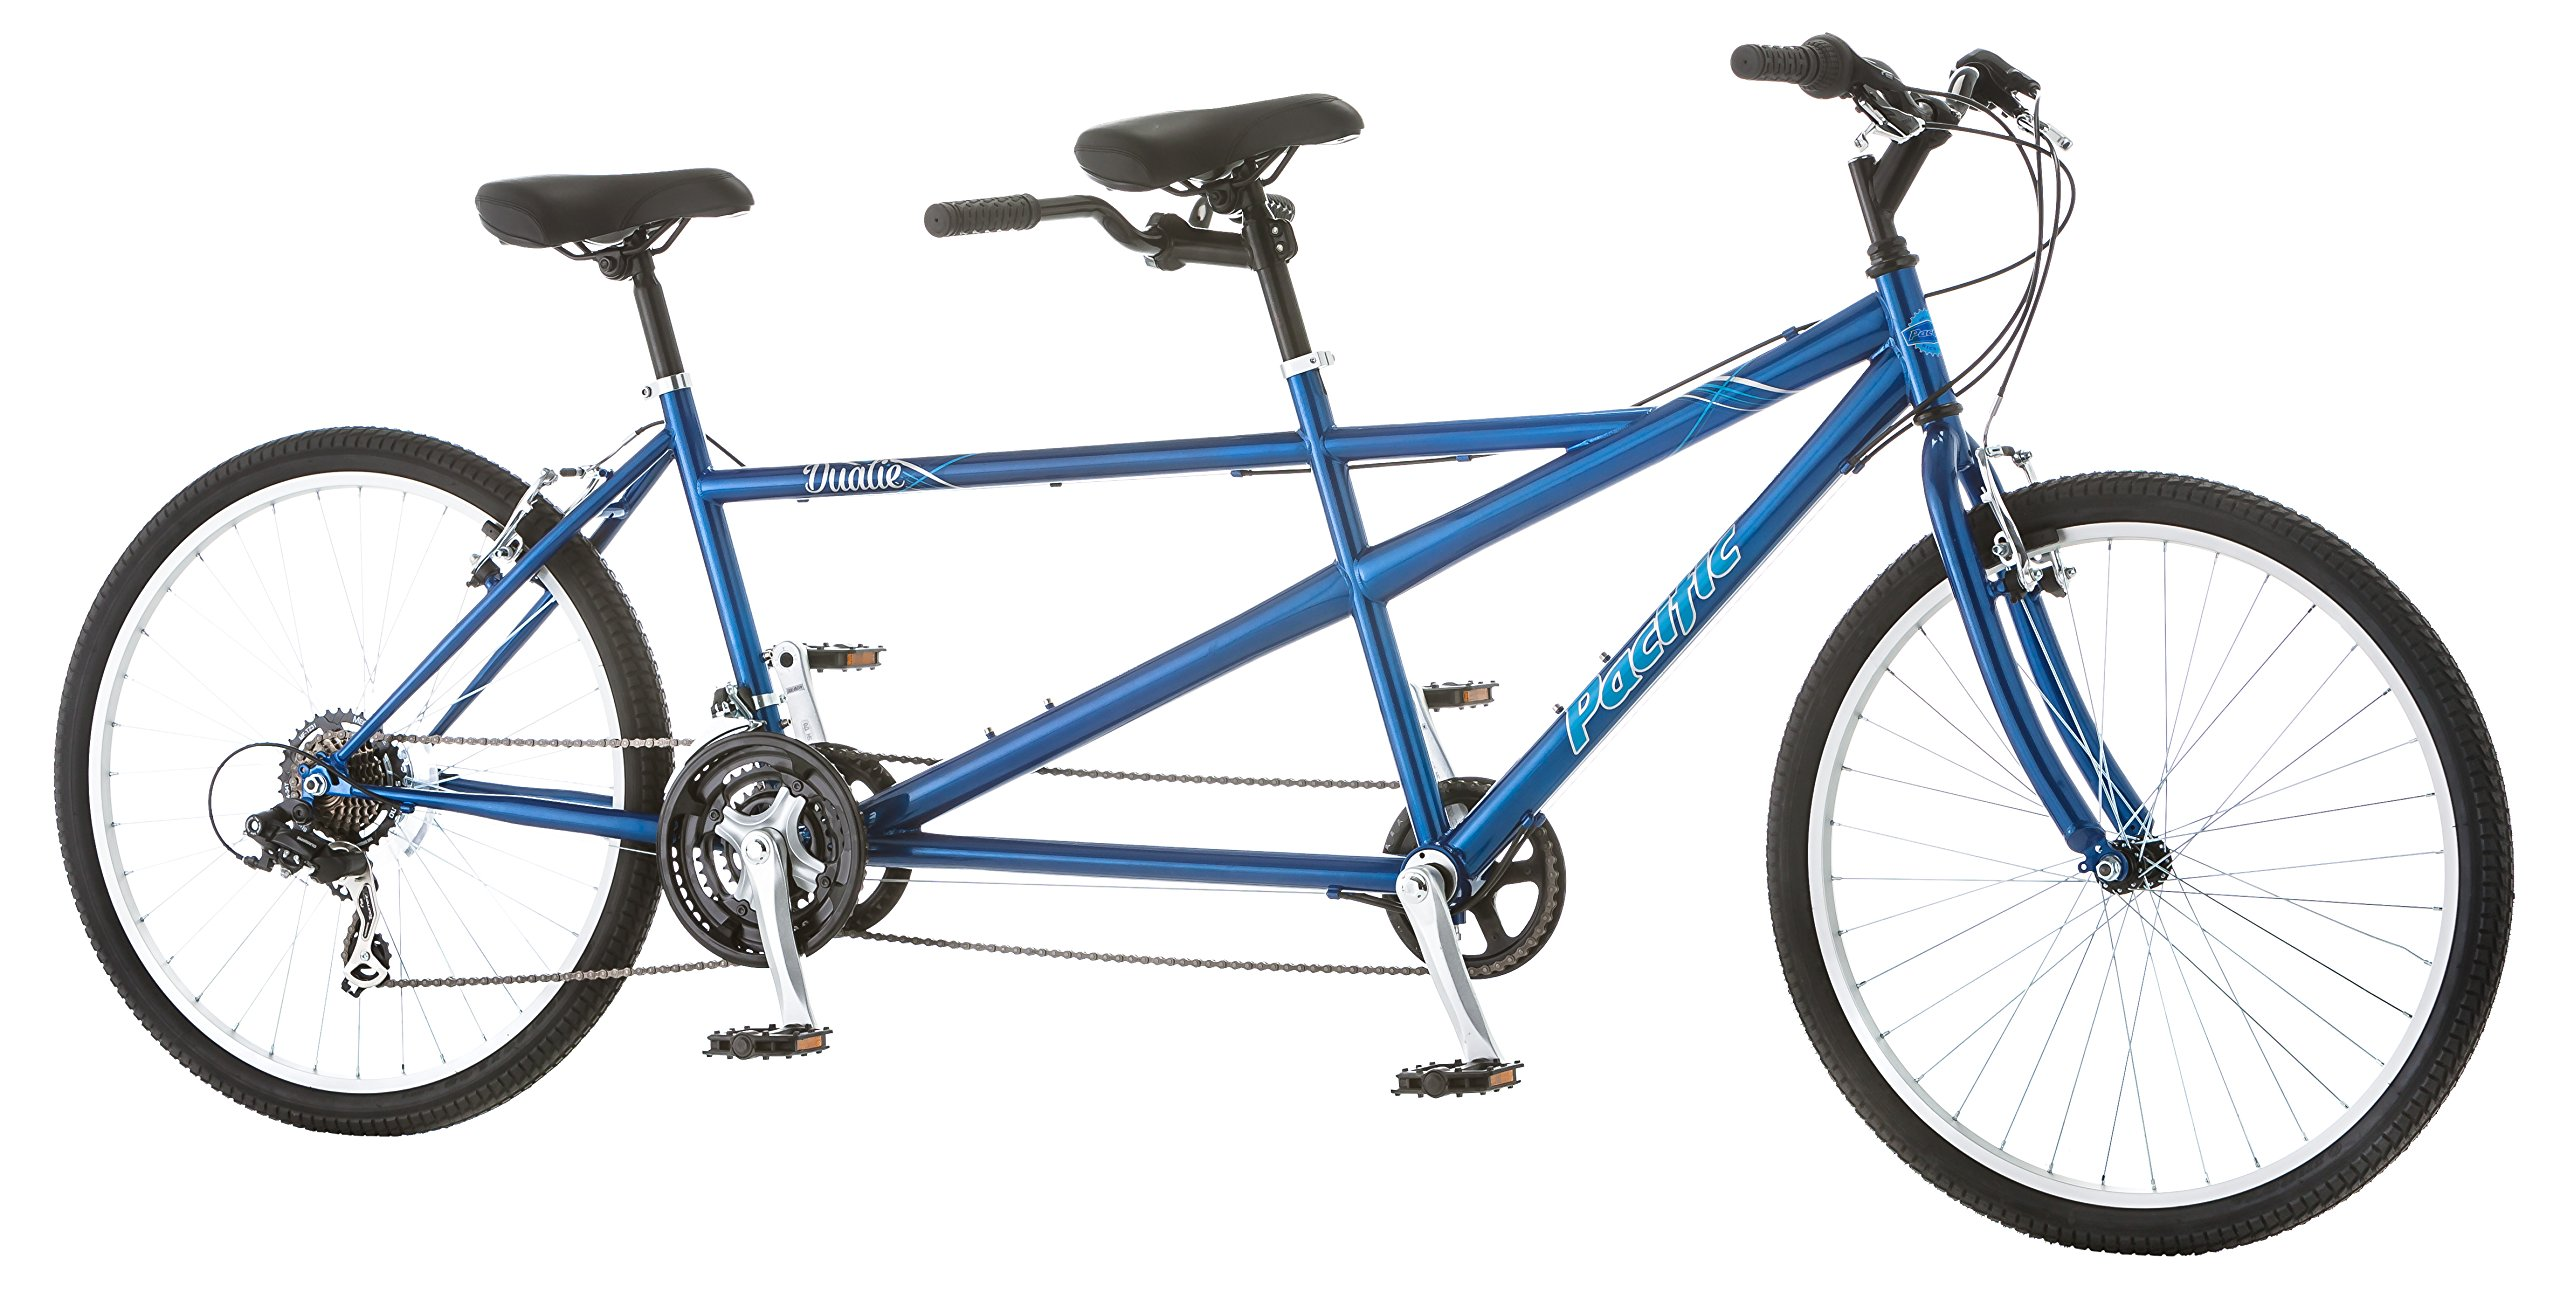 Pacific Dualie Tandem Bicycle w/ 26inch Wheels,Blue, One Size by Pacific (Image #1)